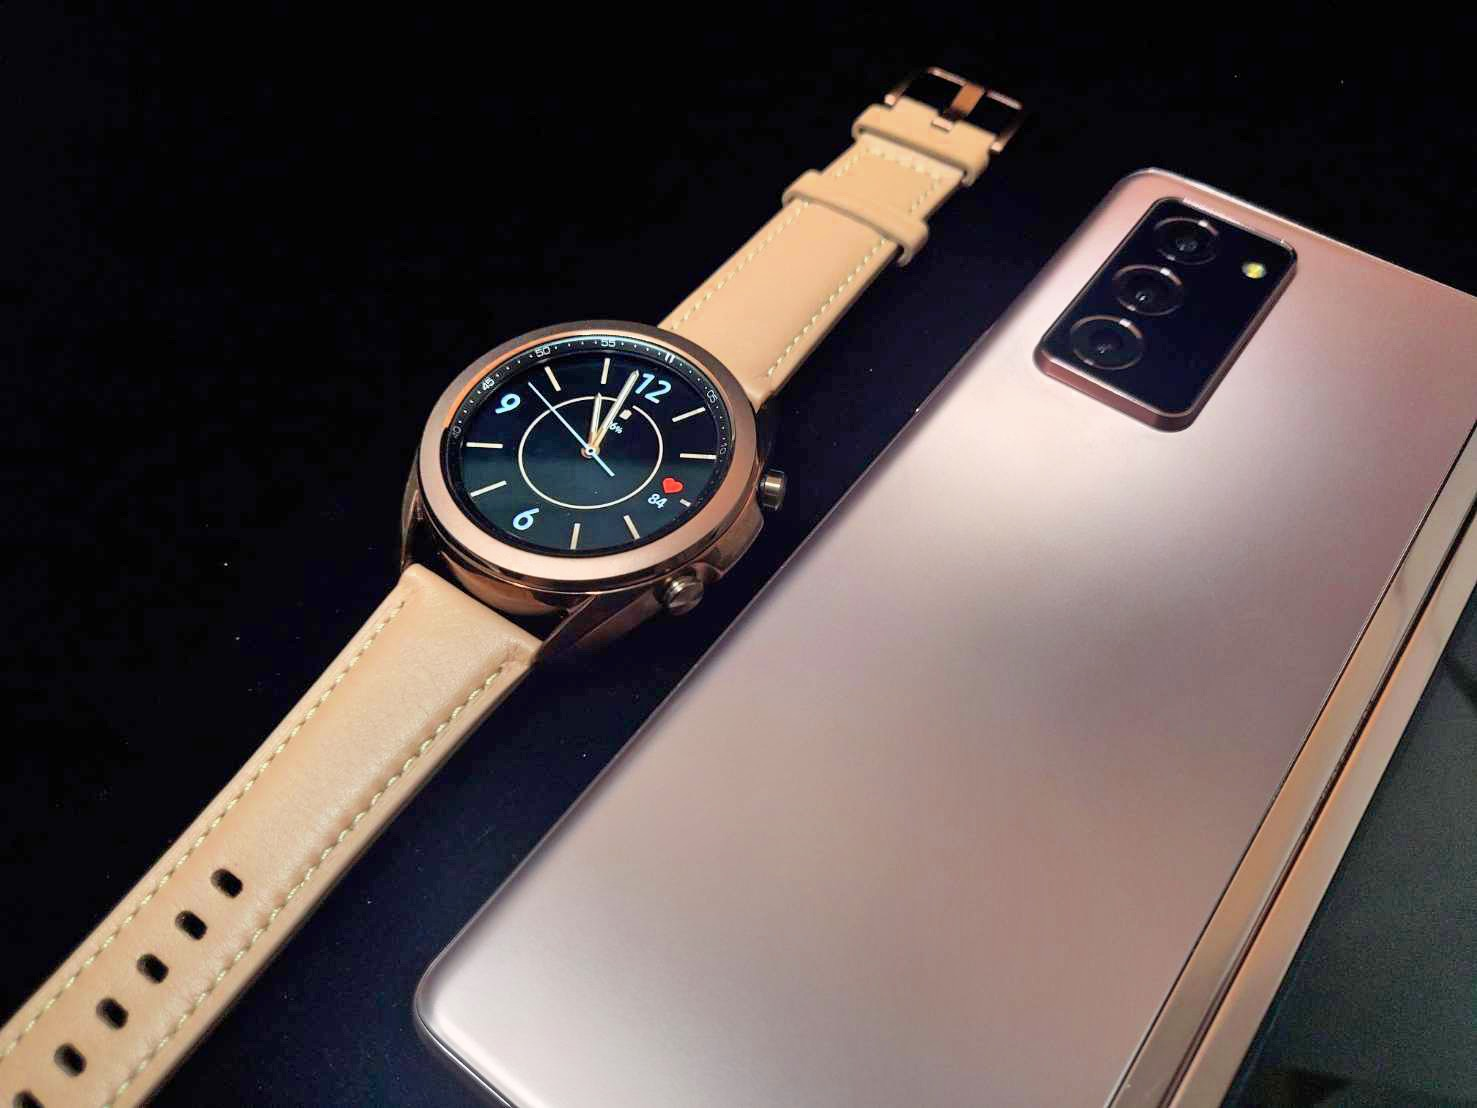 galaxy watch 3 and z fold 2